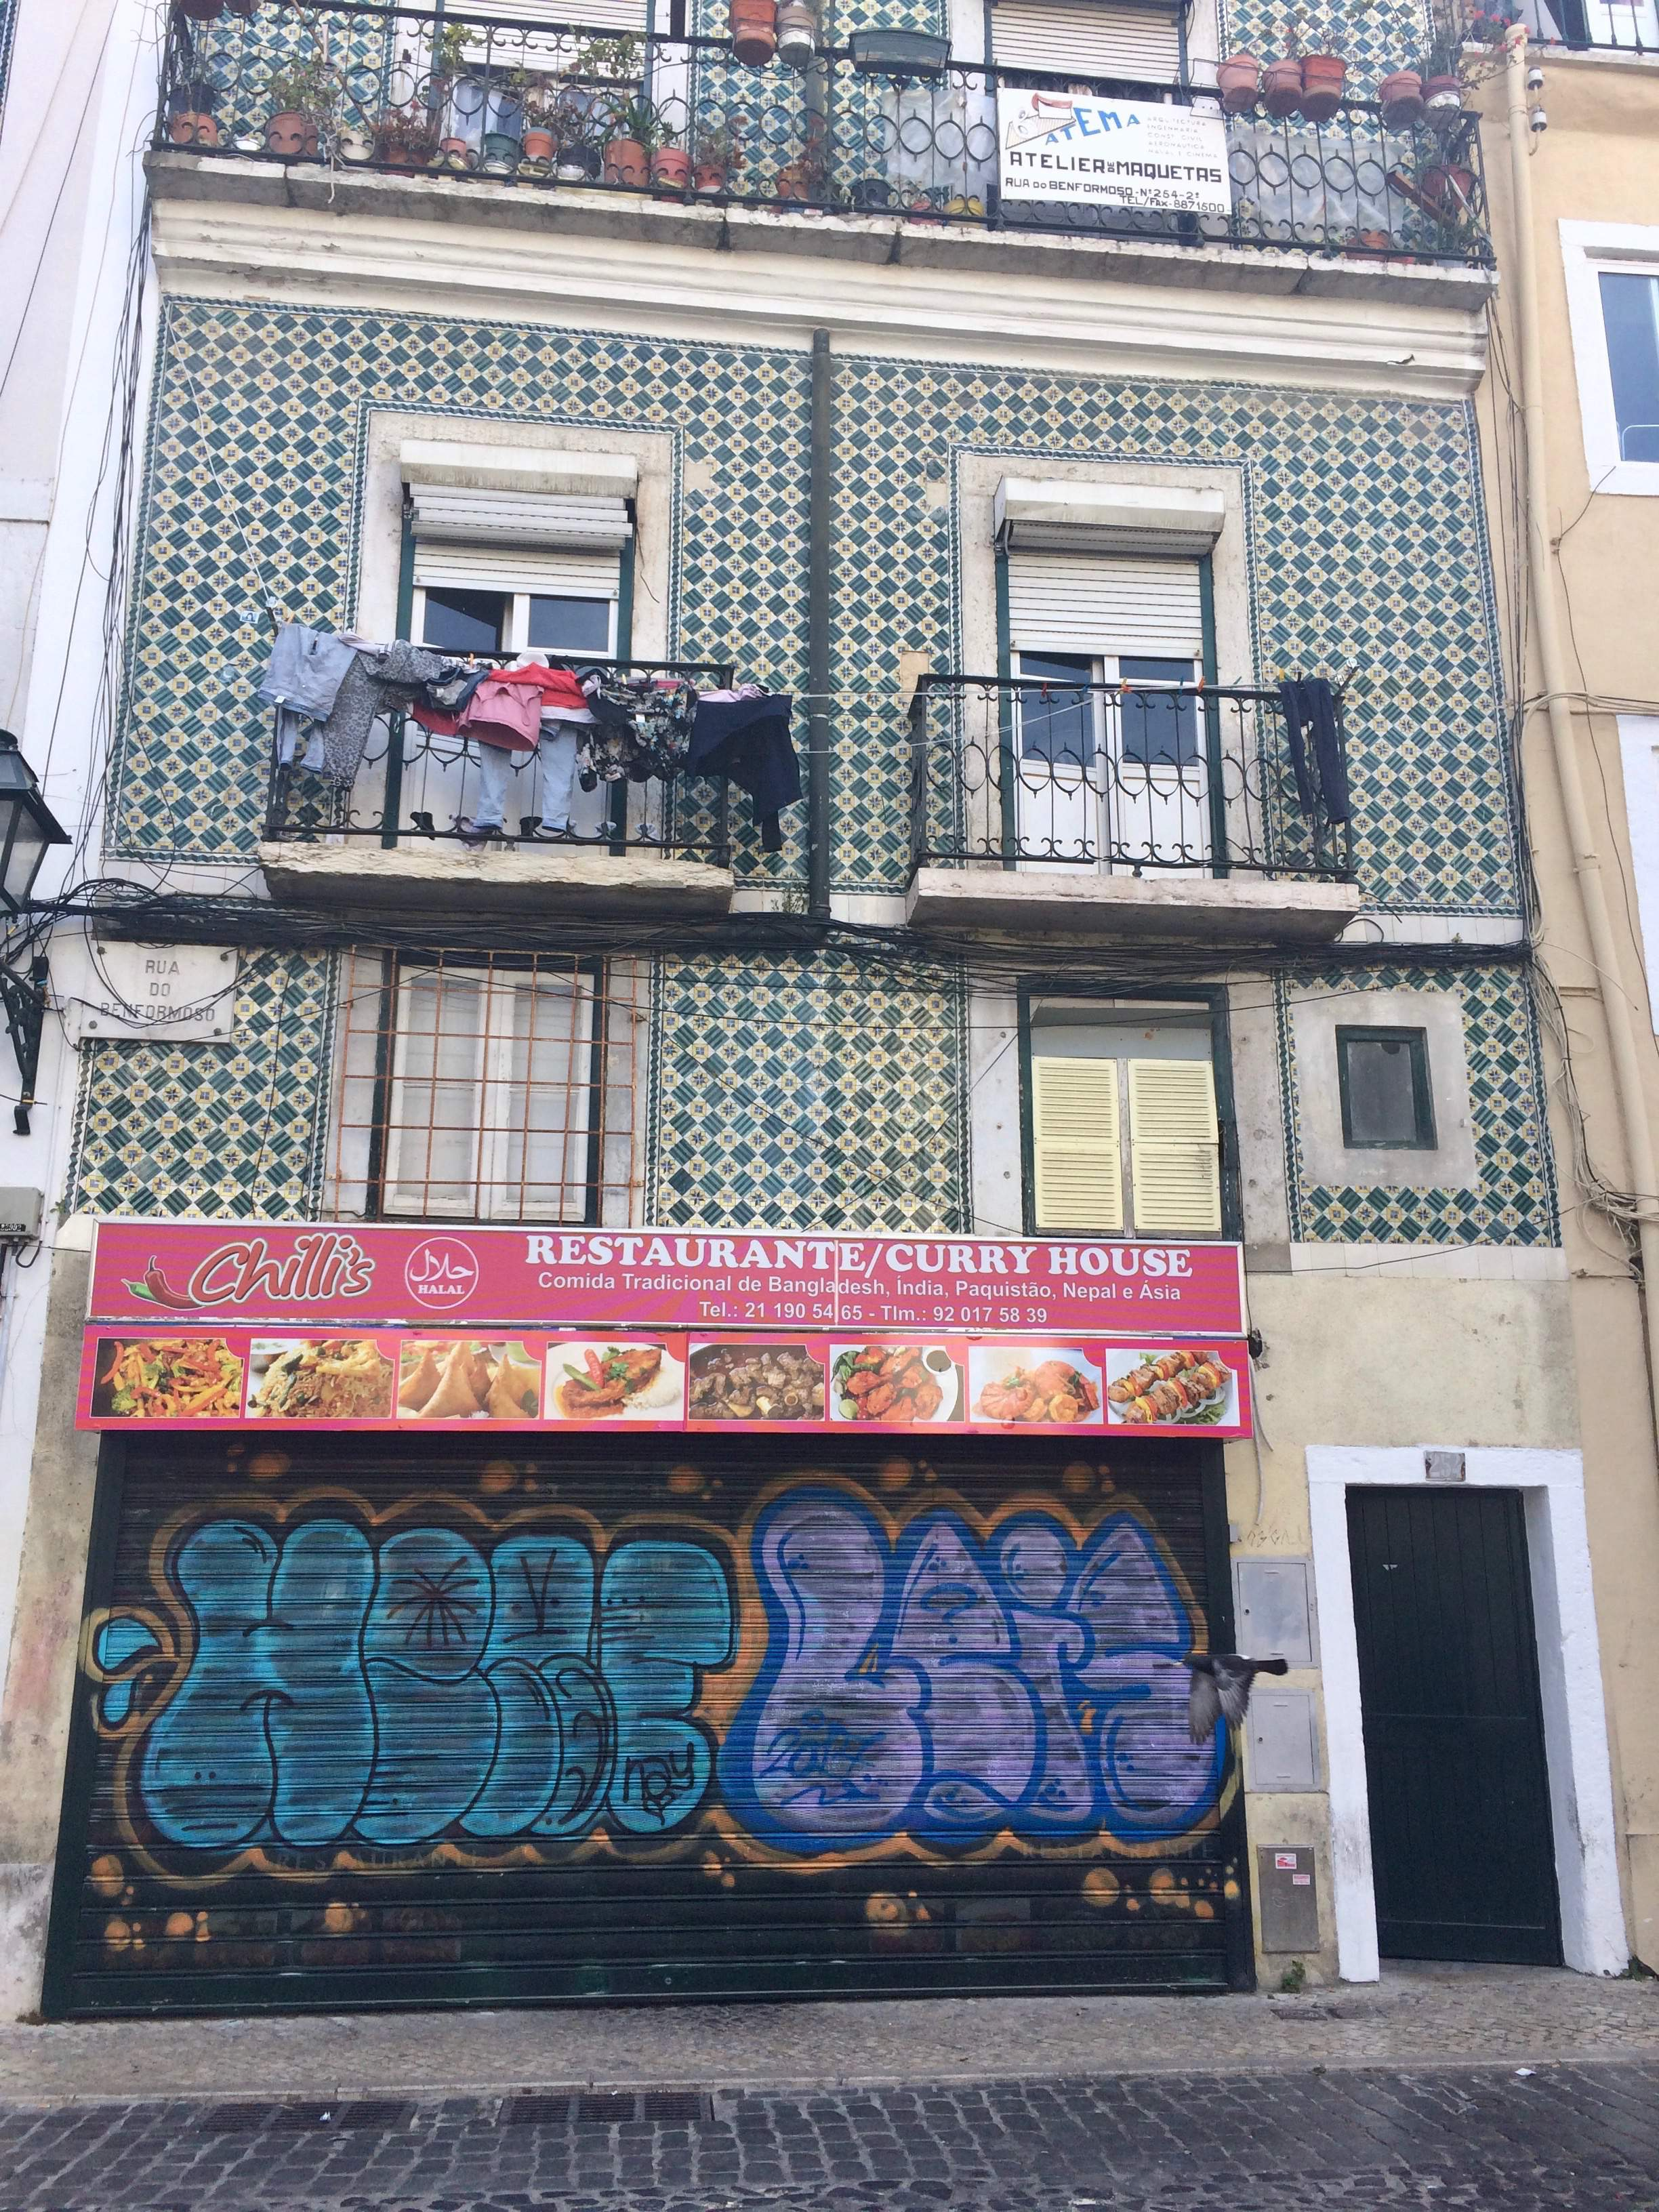 A tiled apartment building in Mouraria Lisbon with an Asian restaurant on the ground floor